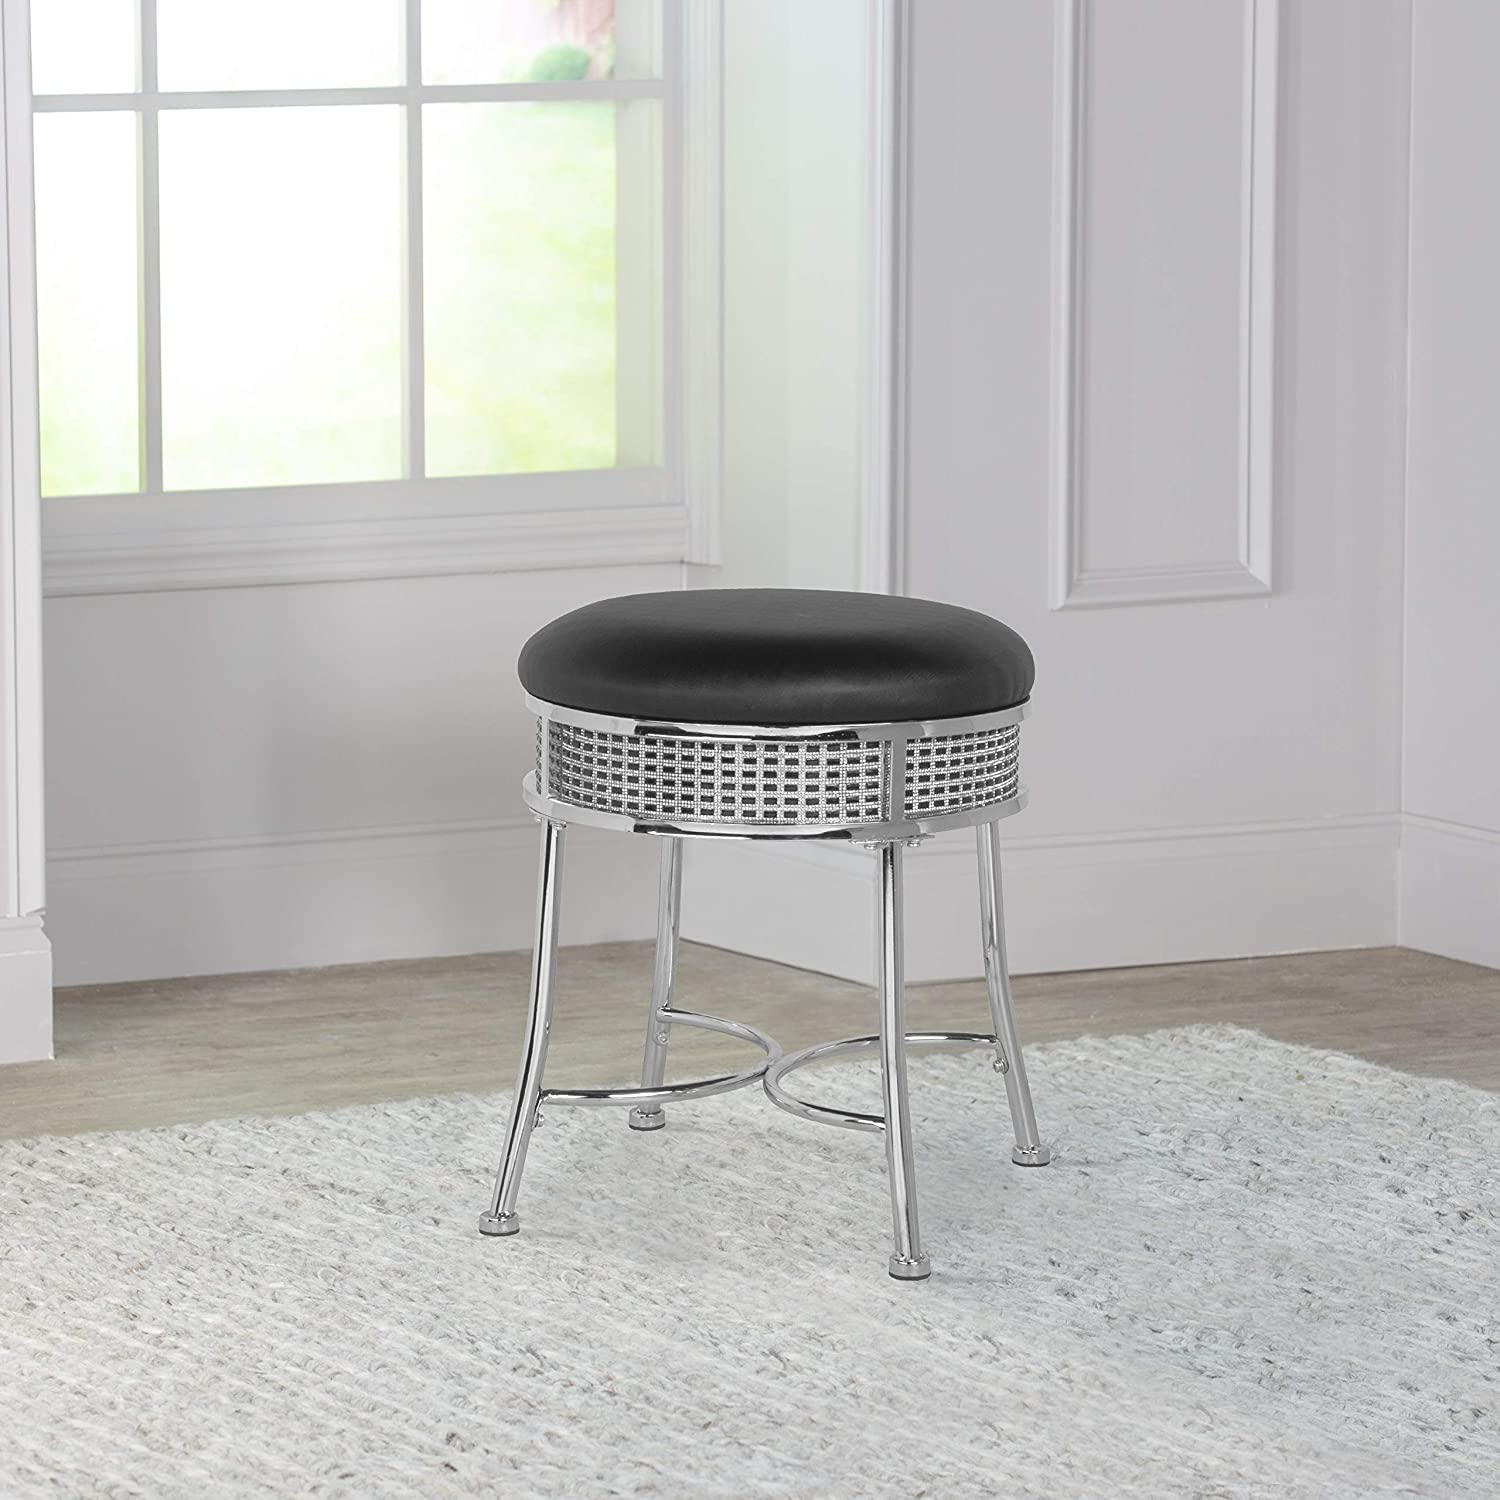 Hillsdale Venice Max 85% OFF Glam Award-winning store Backless Metal Faux Stool Black Vanity Cry